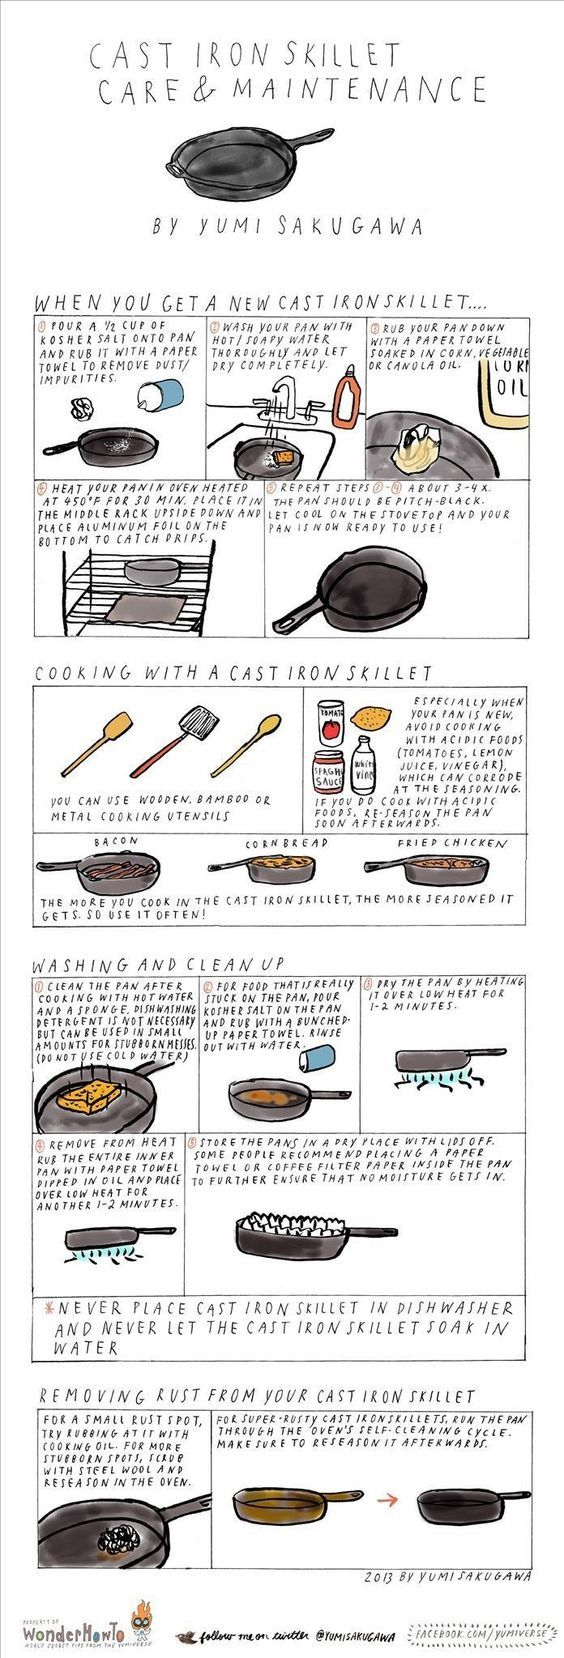 cast iron skillets requires more care and maintenance than your run-of-the-mill frying pan, they can do so much more and last you for a lifetime. Cast iron skillets are ideal heat conductors, which means that your food gets heated evenly and efficiently when cooking. Their durable material also means that they can withstand pretty much anything, so long as you give it proper care and attention after every cooking session. Season your cast iron skillet with vegetable oil or